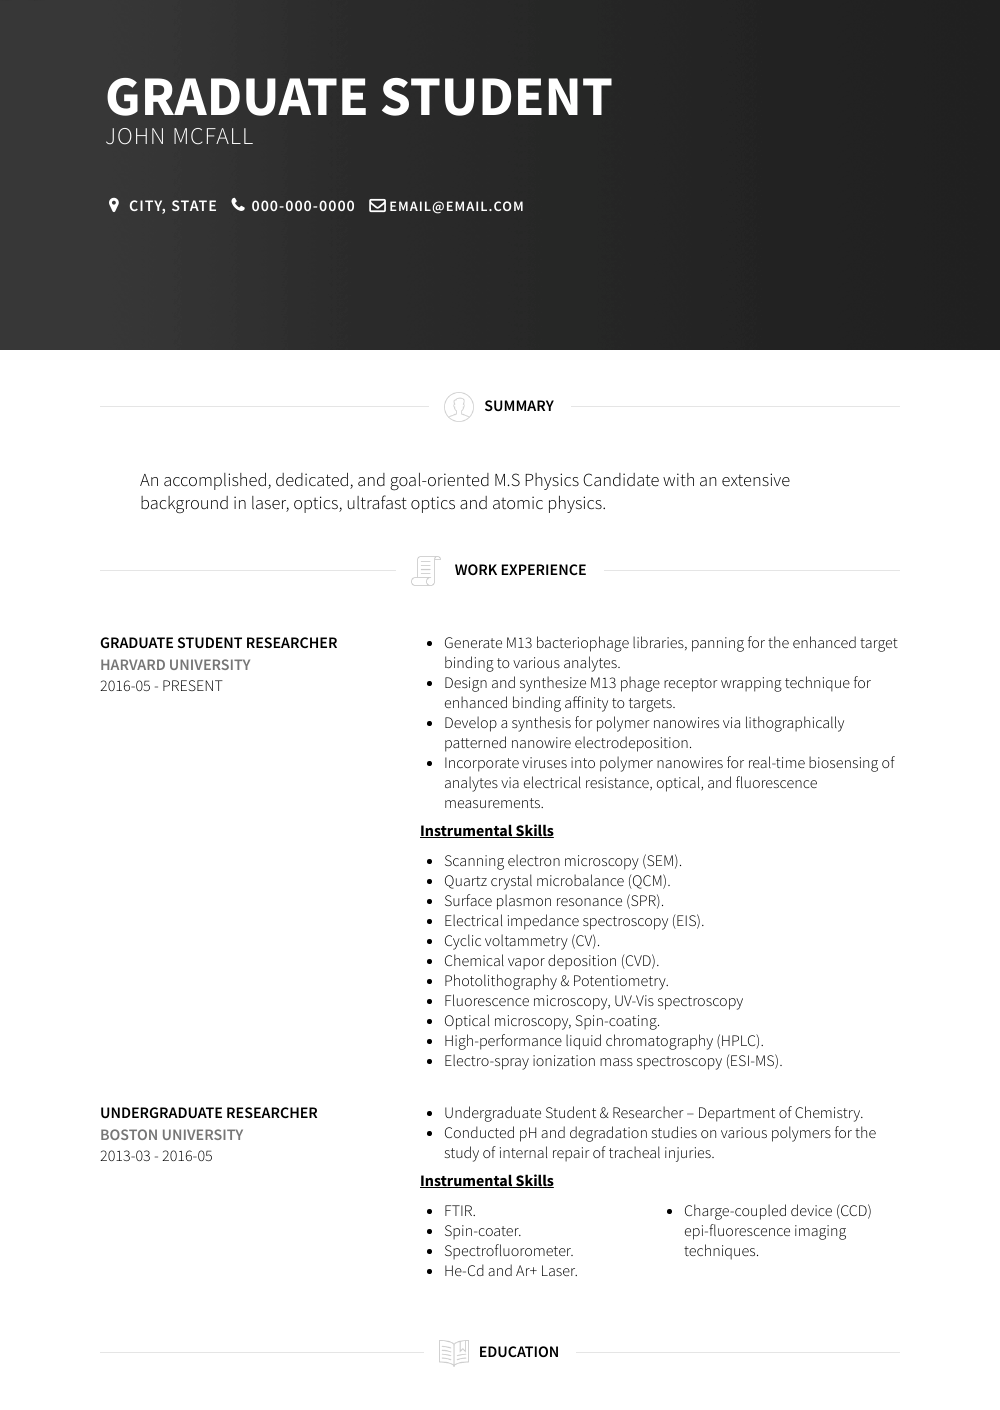 Graduate Student Resume Sample and Template